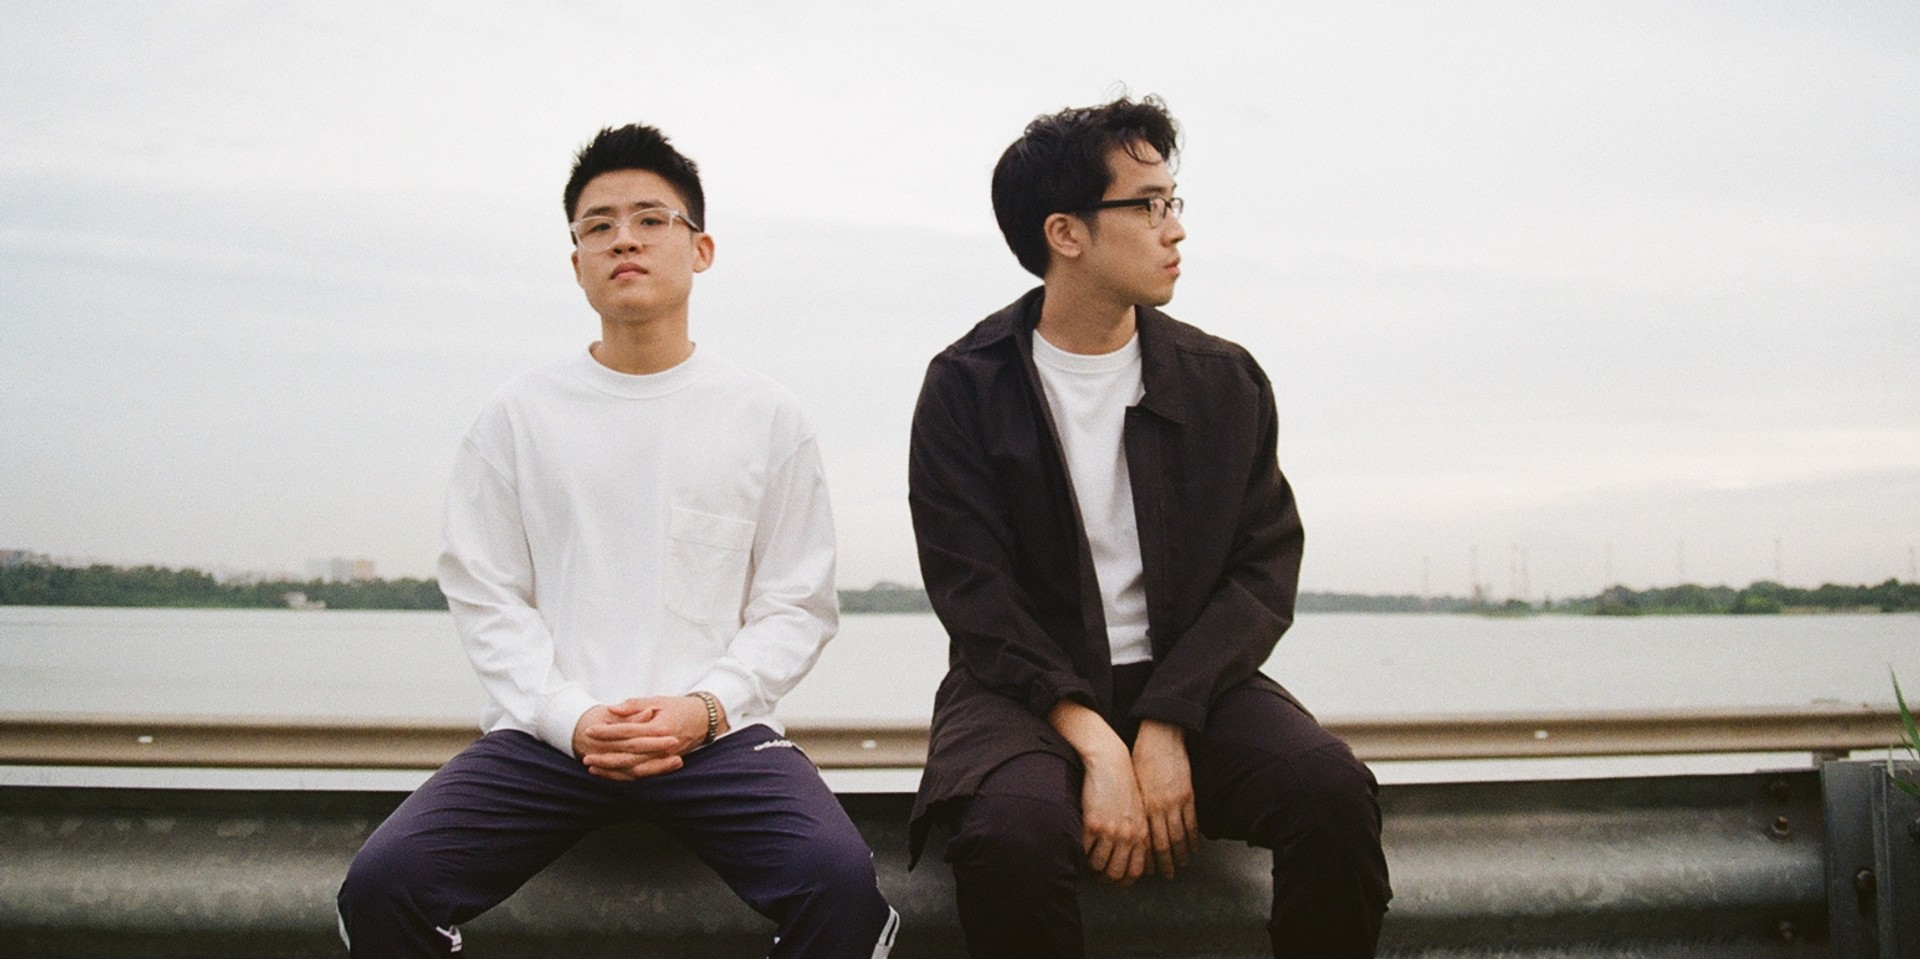 Get to know the 'Two Sides' of Gentle Bones and Charlie Lim